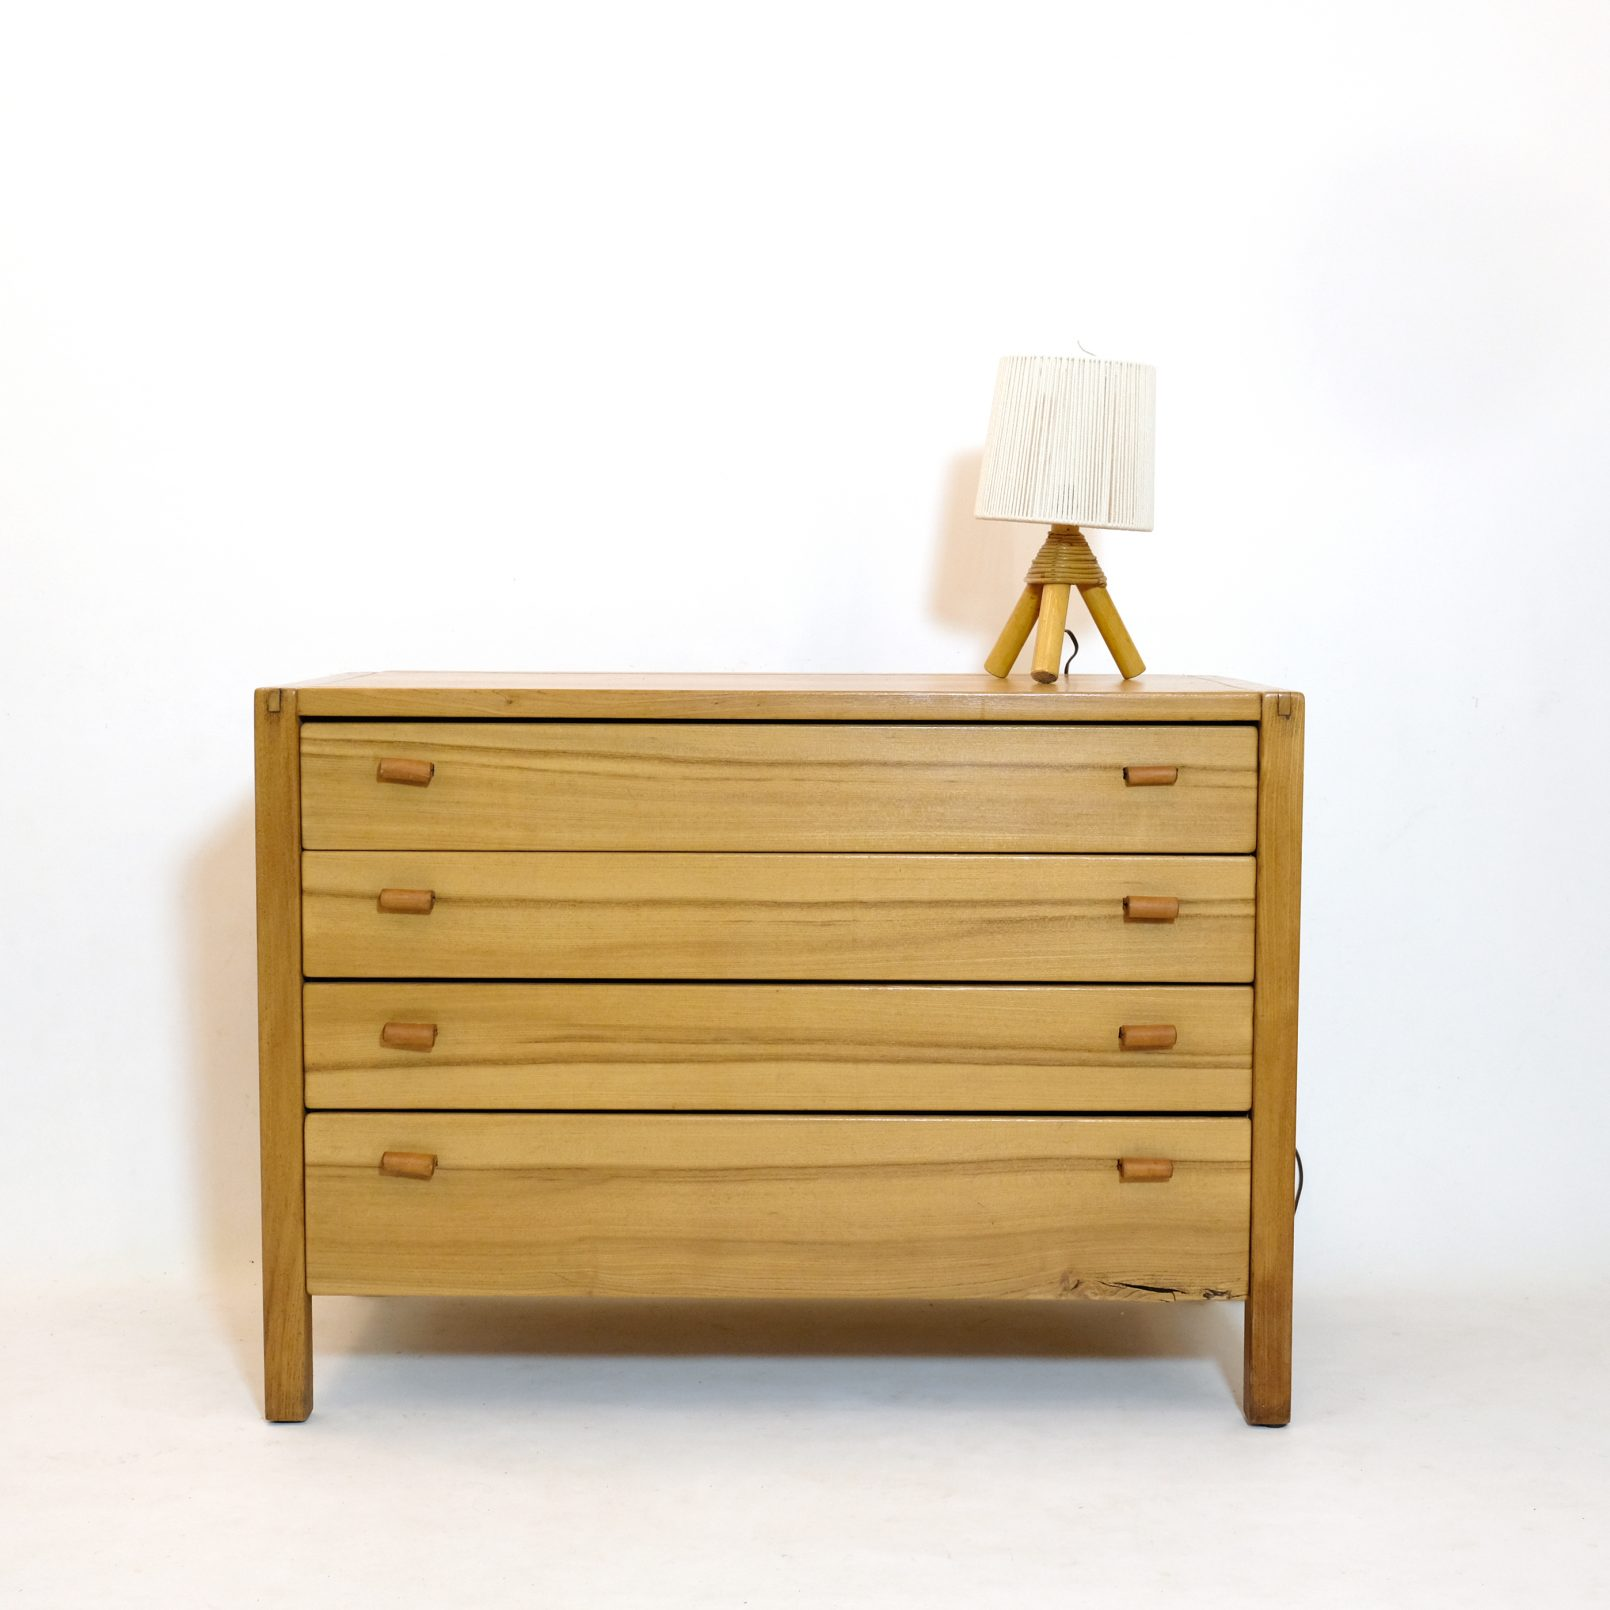 Elm chest of drawers from the 1970s-1980s.